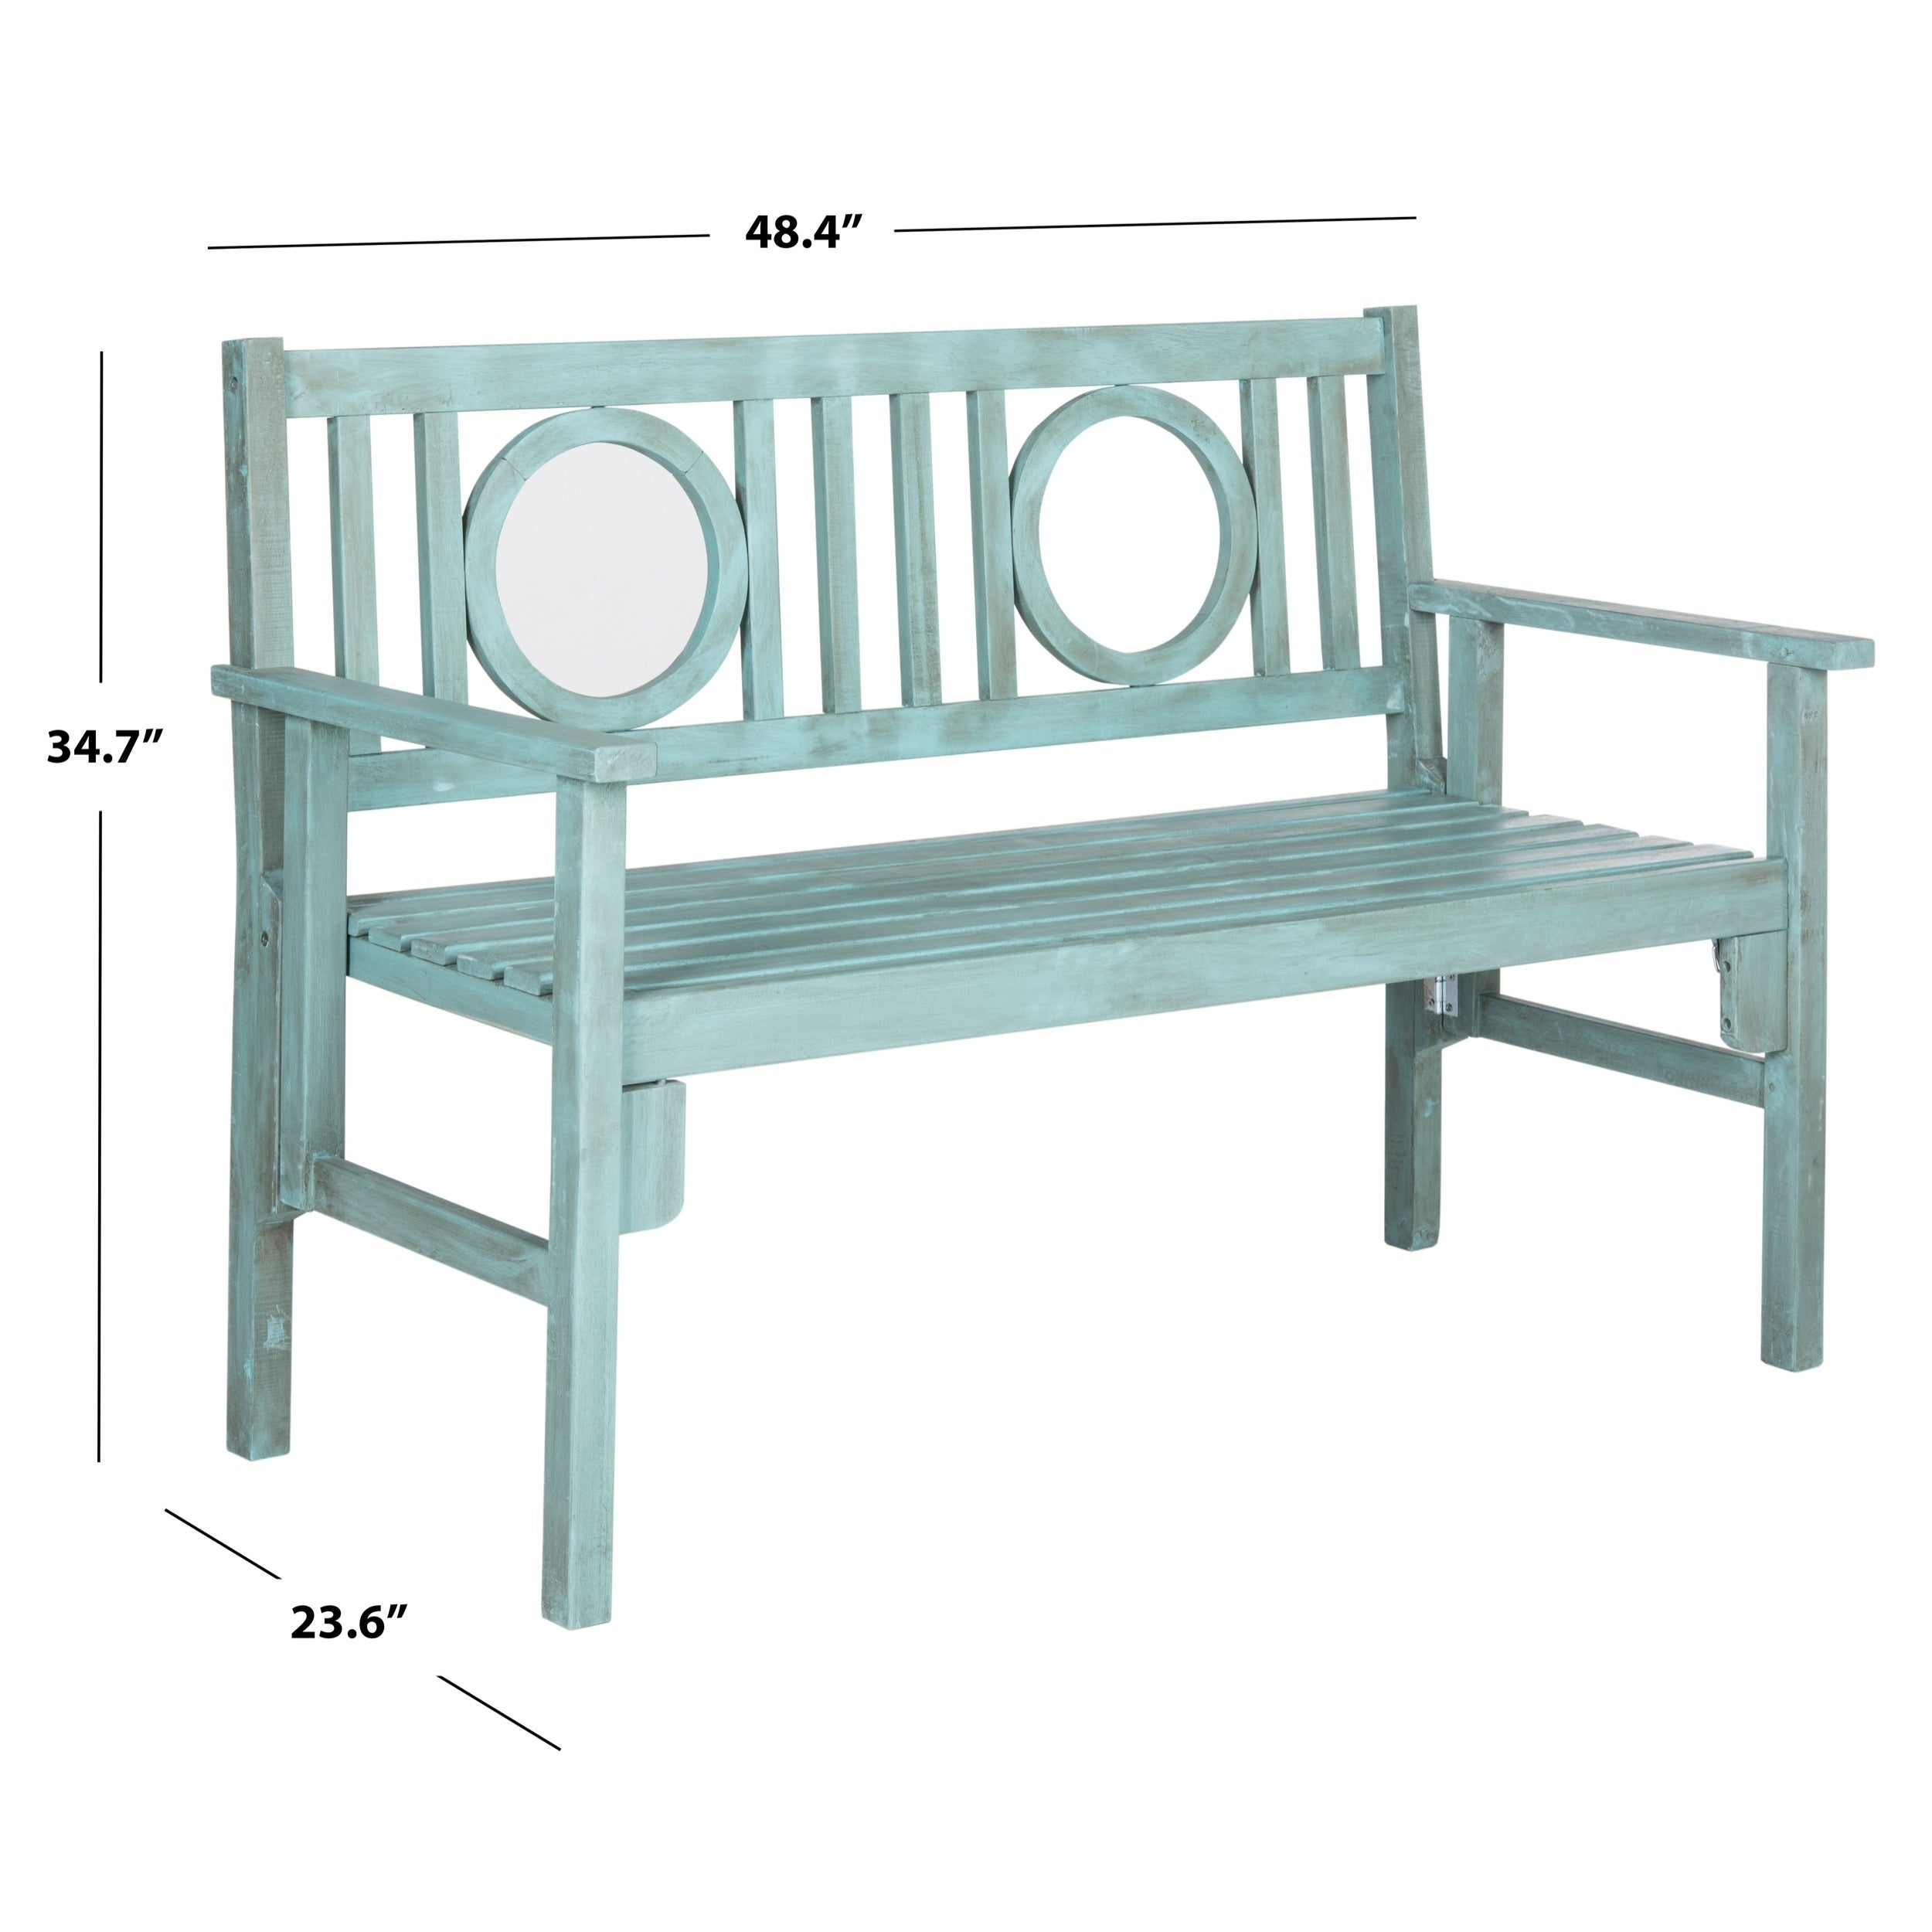 Admirable Safavieh Outdoor Living Piedmont Beach House Blue Folding Bench 48 4 X 23 6 X 34 7 Andrewgaddart Wooden Chair Designs For Living Room Andrewgaddartcom